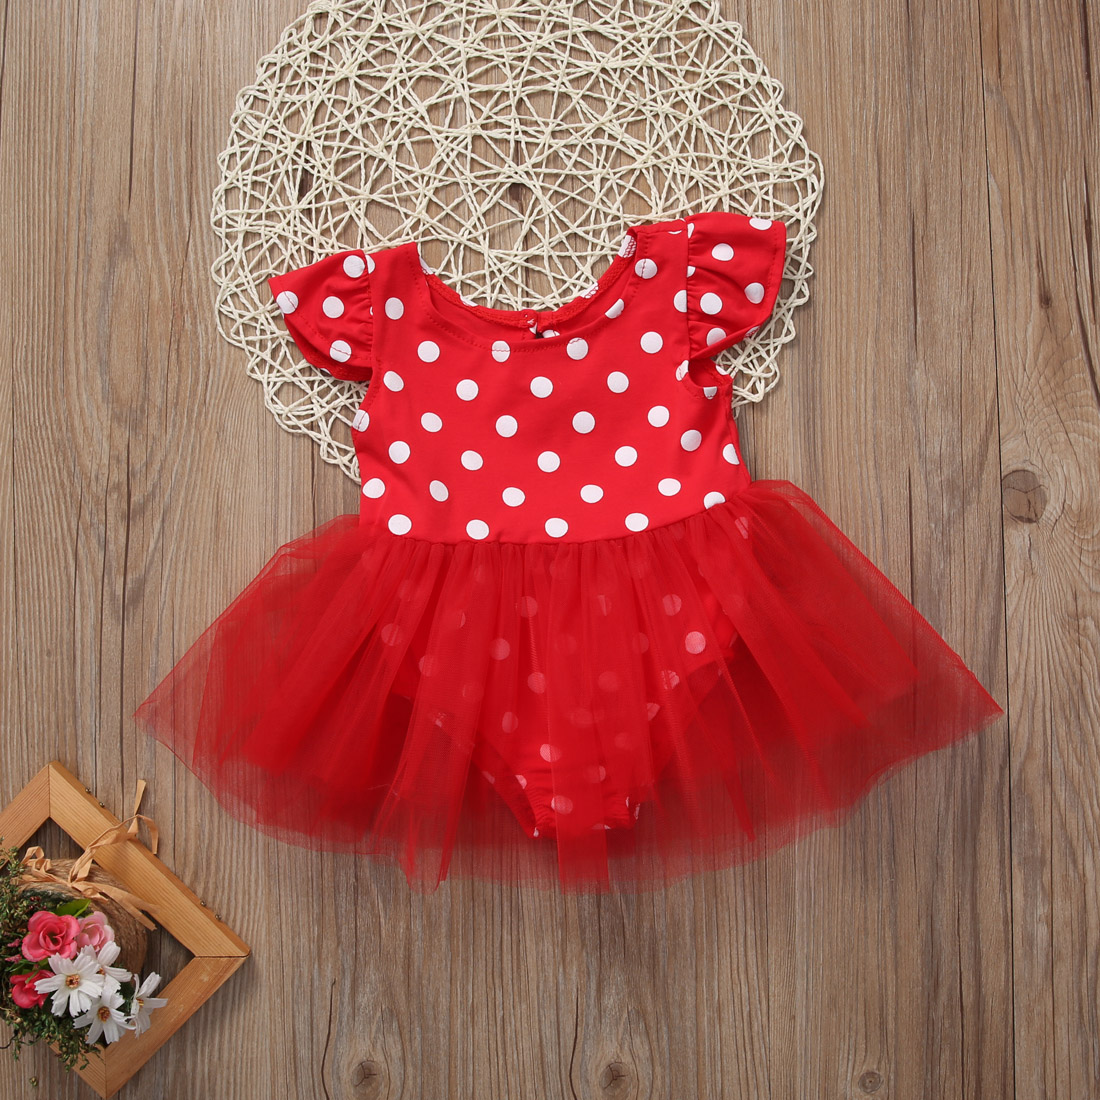 Infant 0-3Y Girl Kids Summer Clothes Set Minnie Mouse Princess VintageTulle Polka Dot Romper Lace Dress Wedding Party Dresses